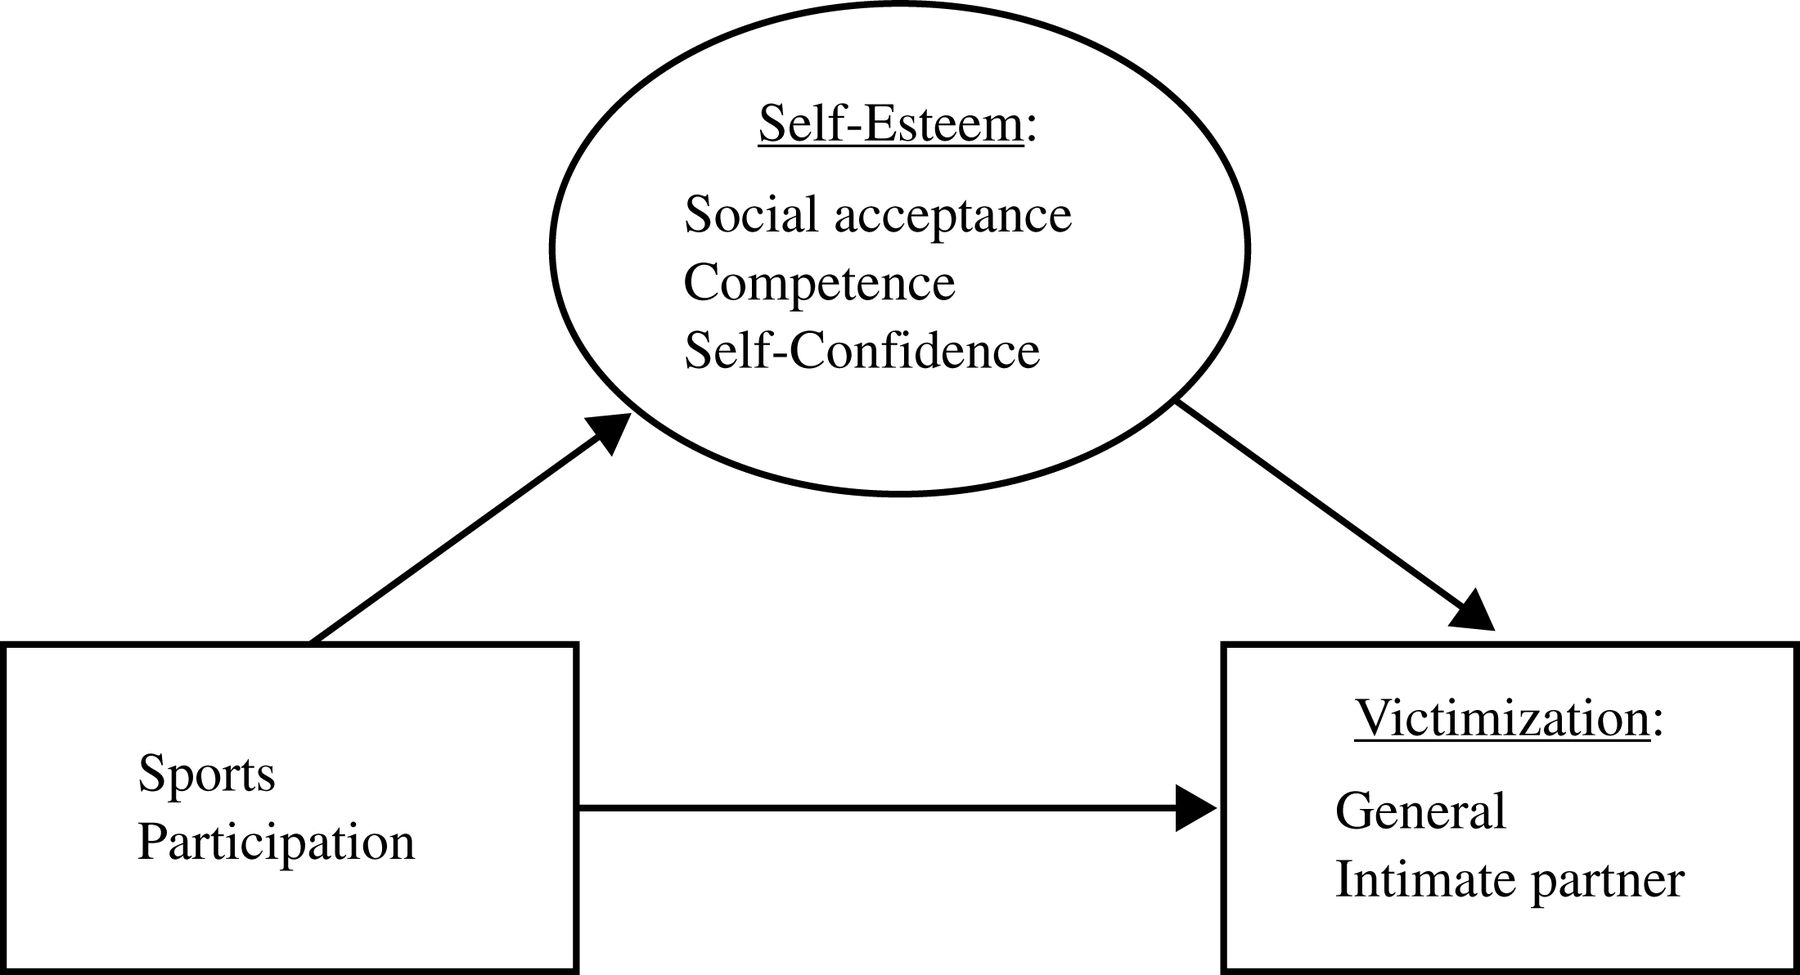 Multidimensional Self-Esteem as a Mediator of the